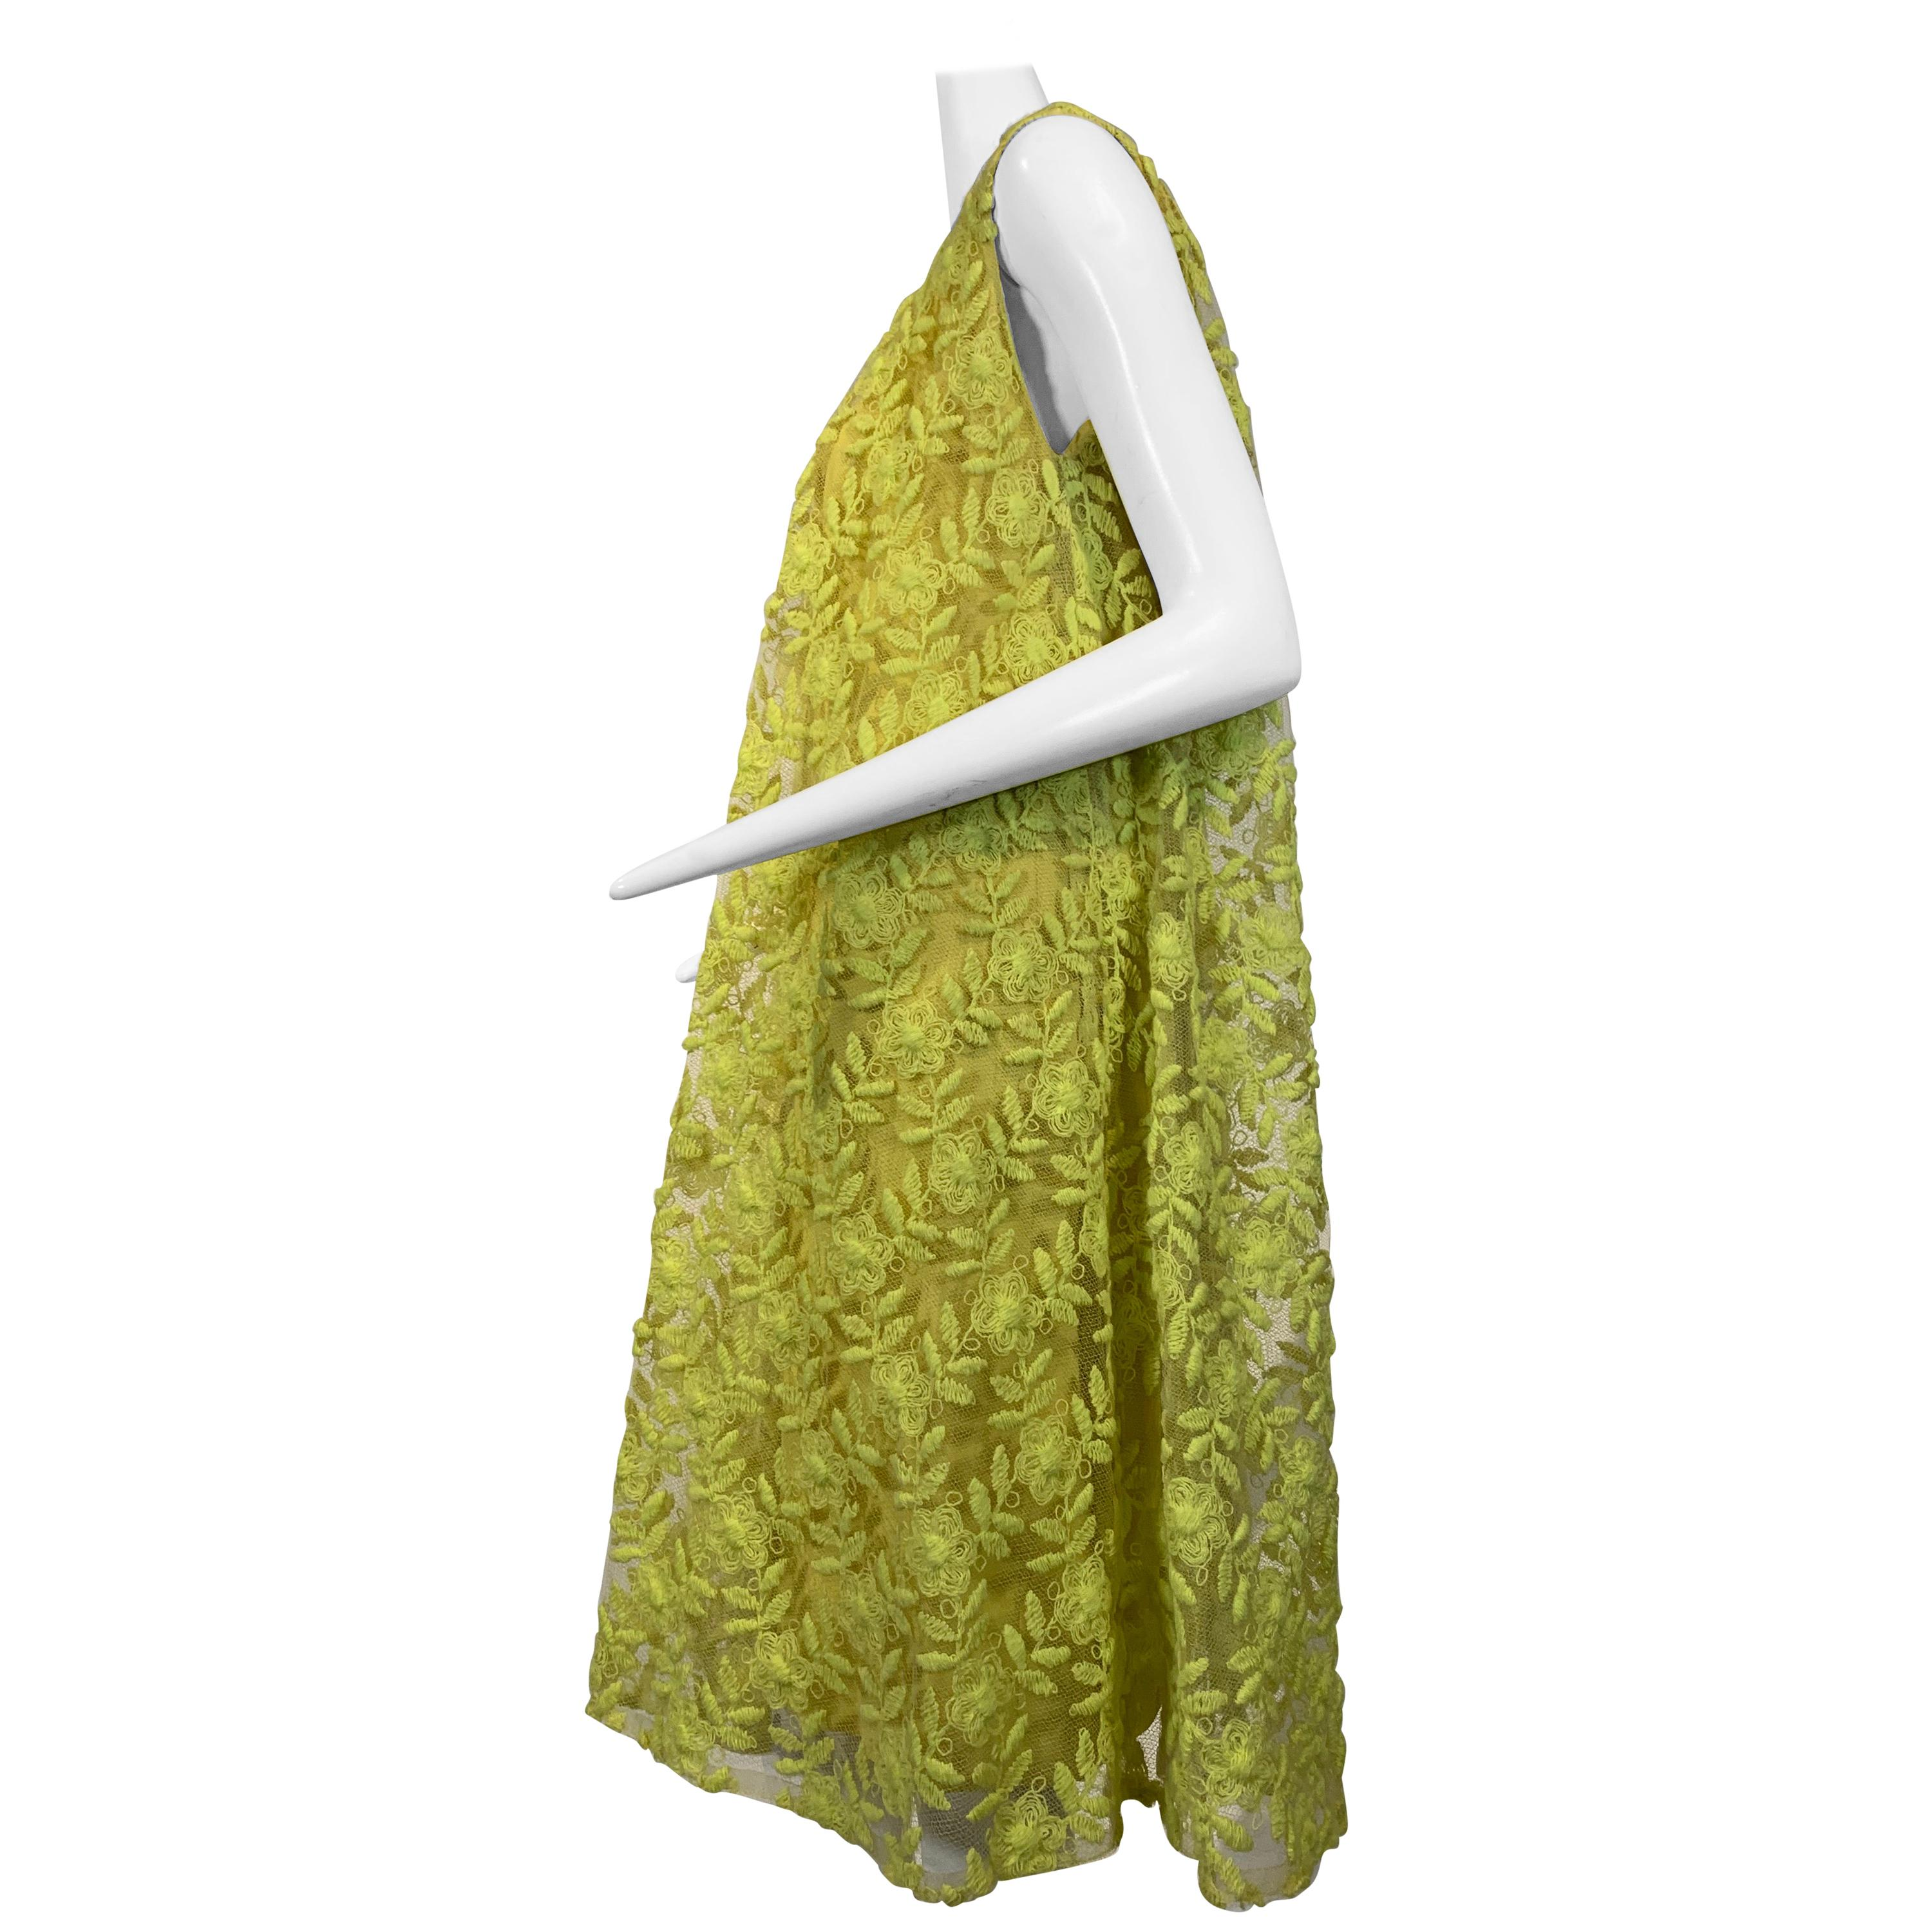 1960 Mr. Blackwell Fluorescent Yellow Embroidered Floral Net Trapeze Dress